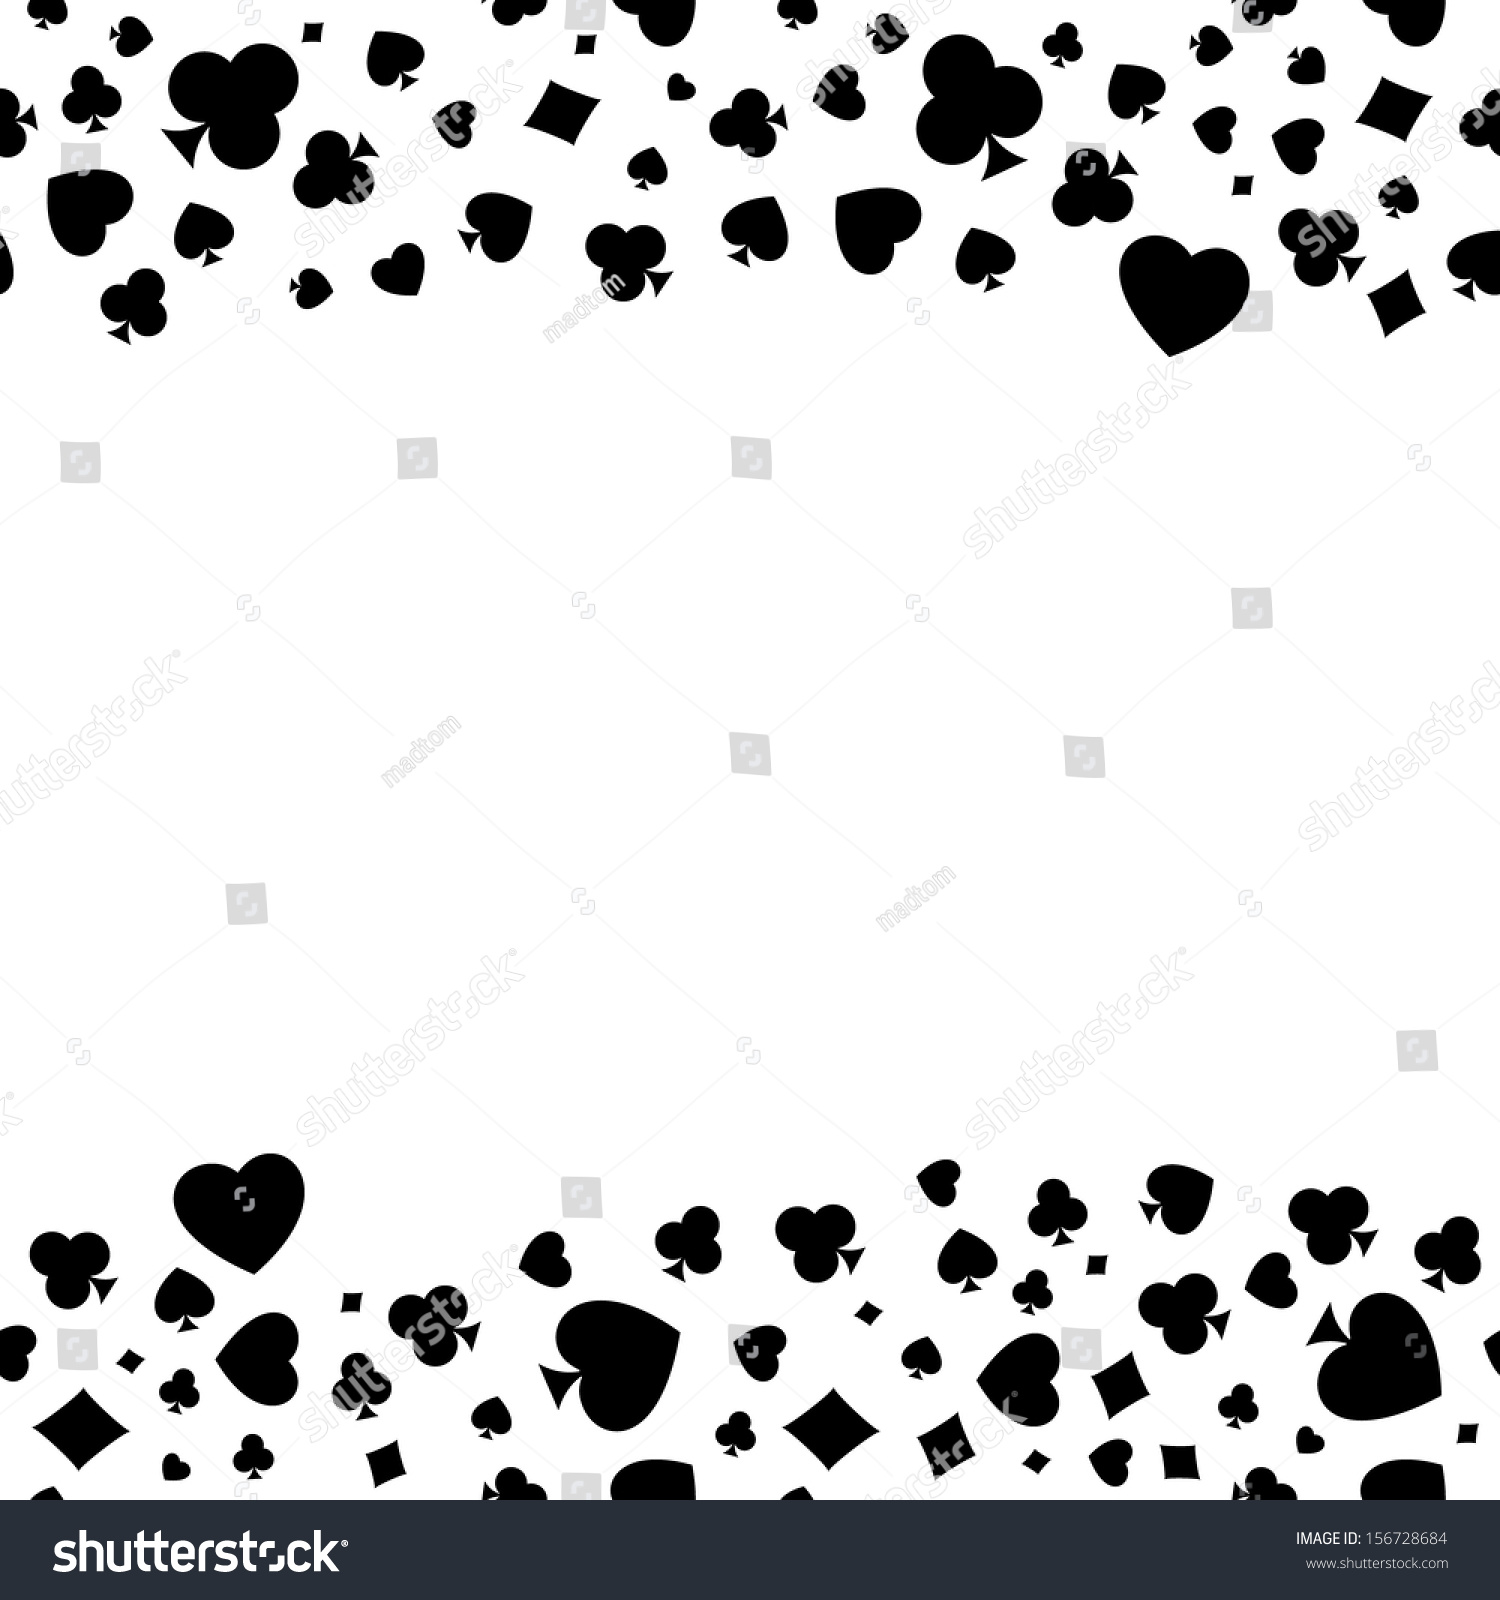 Seamless pattern made out casino symbols stock vector 156728684 the seamless pattern made out of casino symbols heart diamond spade and clubs biocorpaavc Gallery